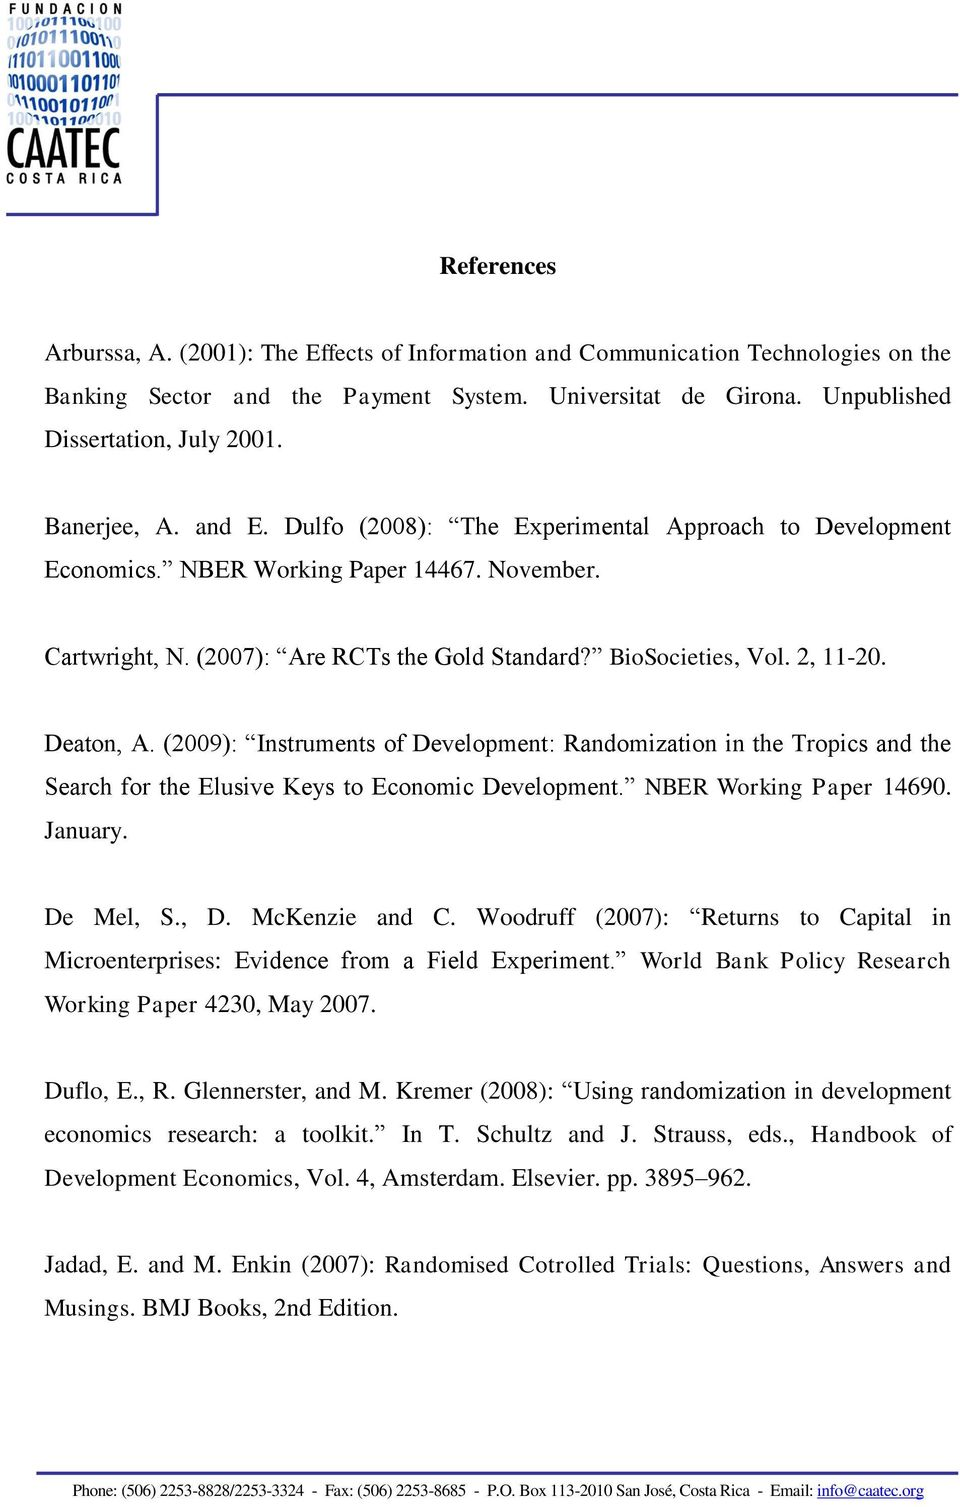 2, 11-20. Deaton, A. (2009): Instruments of Development: Randomization in the Tropics and the Search for the Elusive Keys to Economic Development. NBER Working Paper 14690. January. De Mel, S., D.